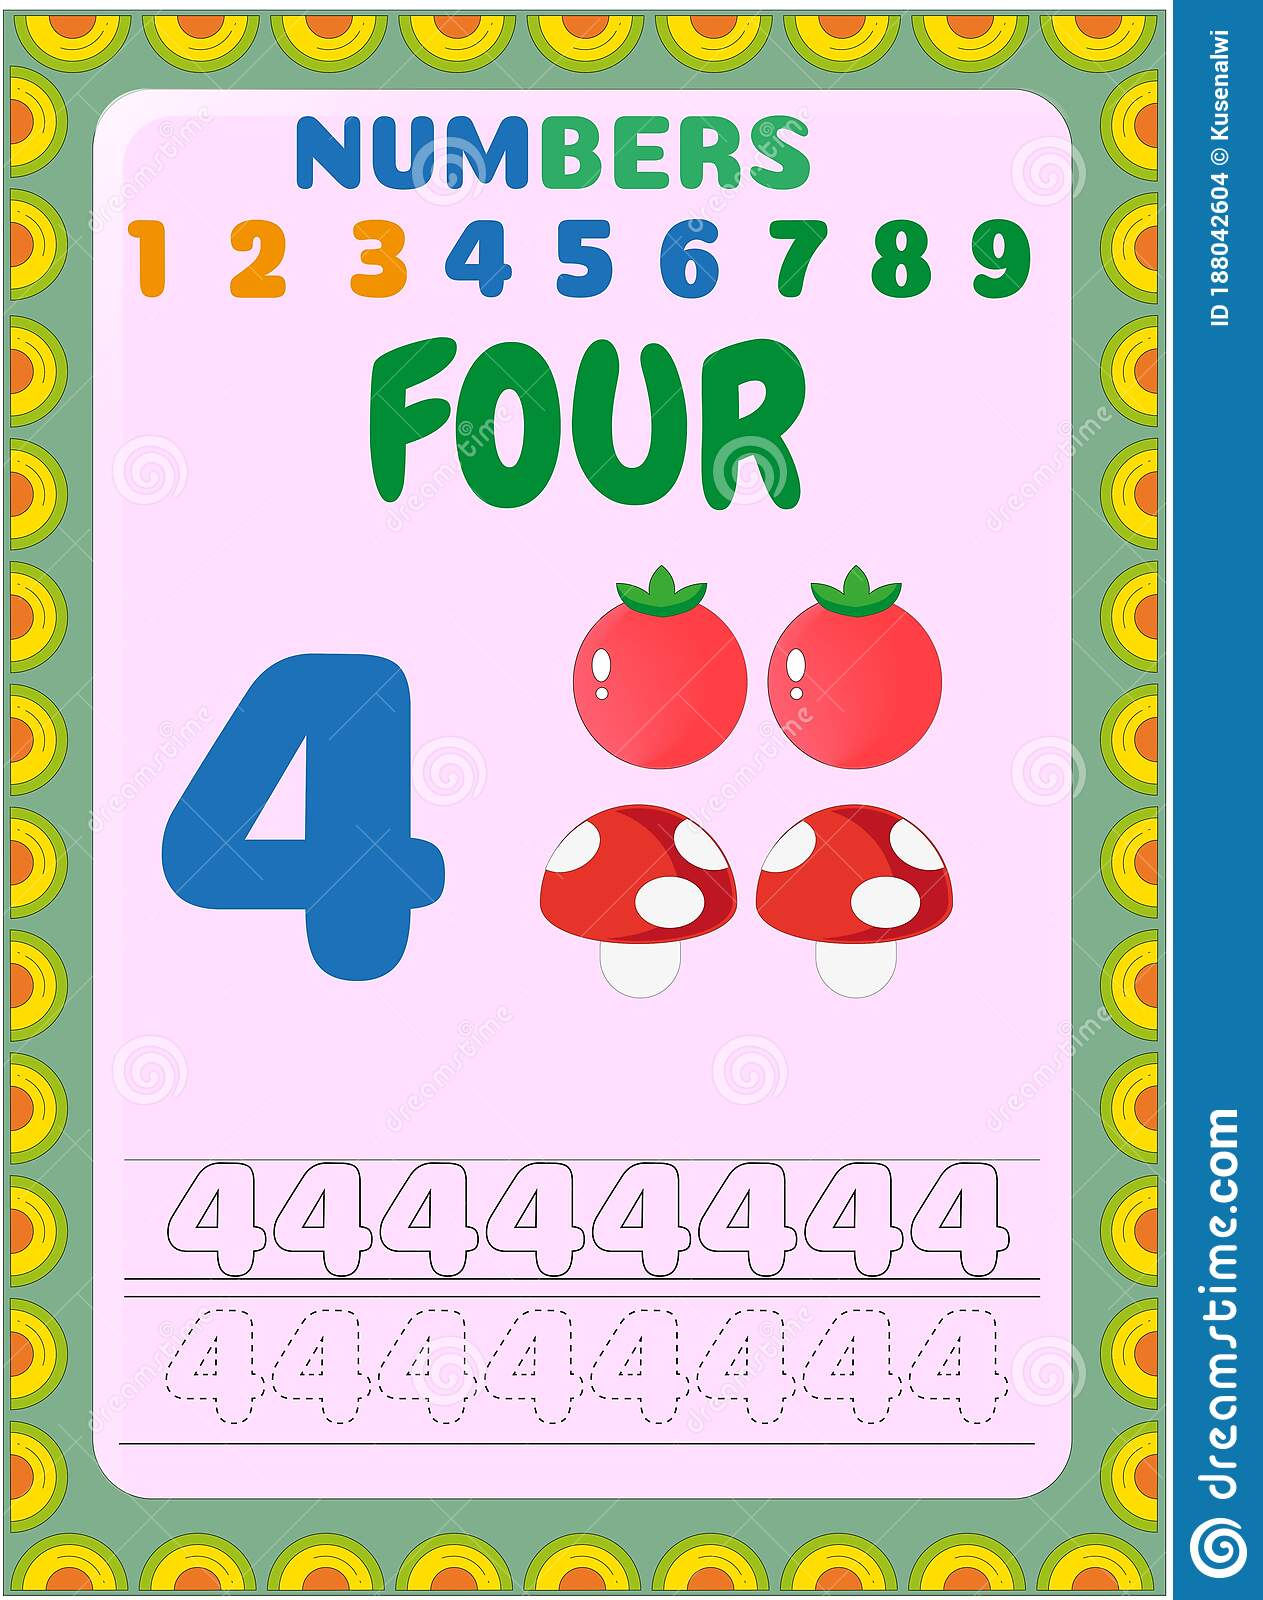 Preschool Toddler Math With Tomato And Mushroom Design